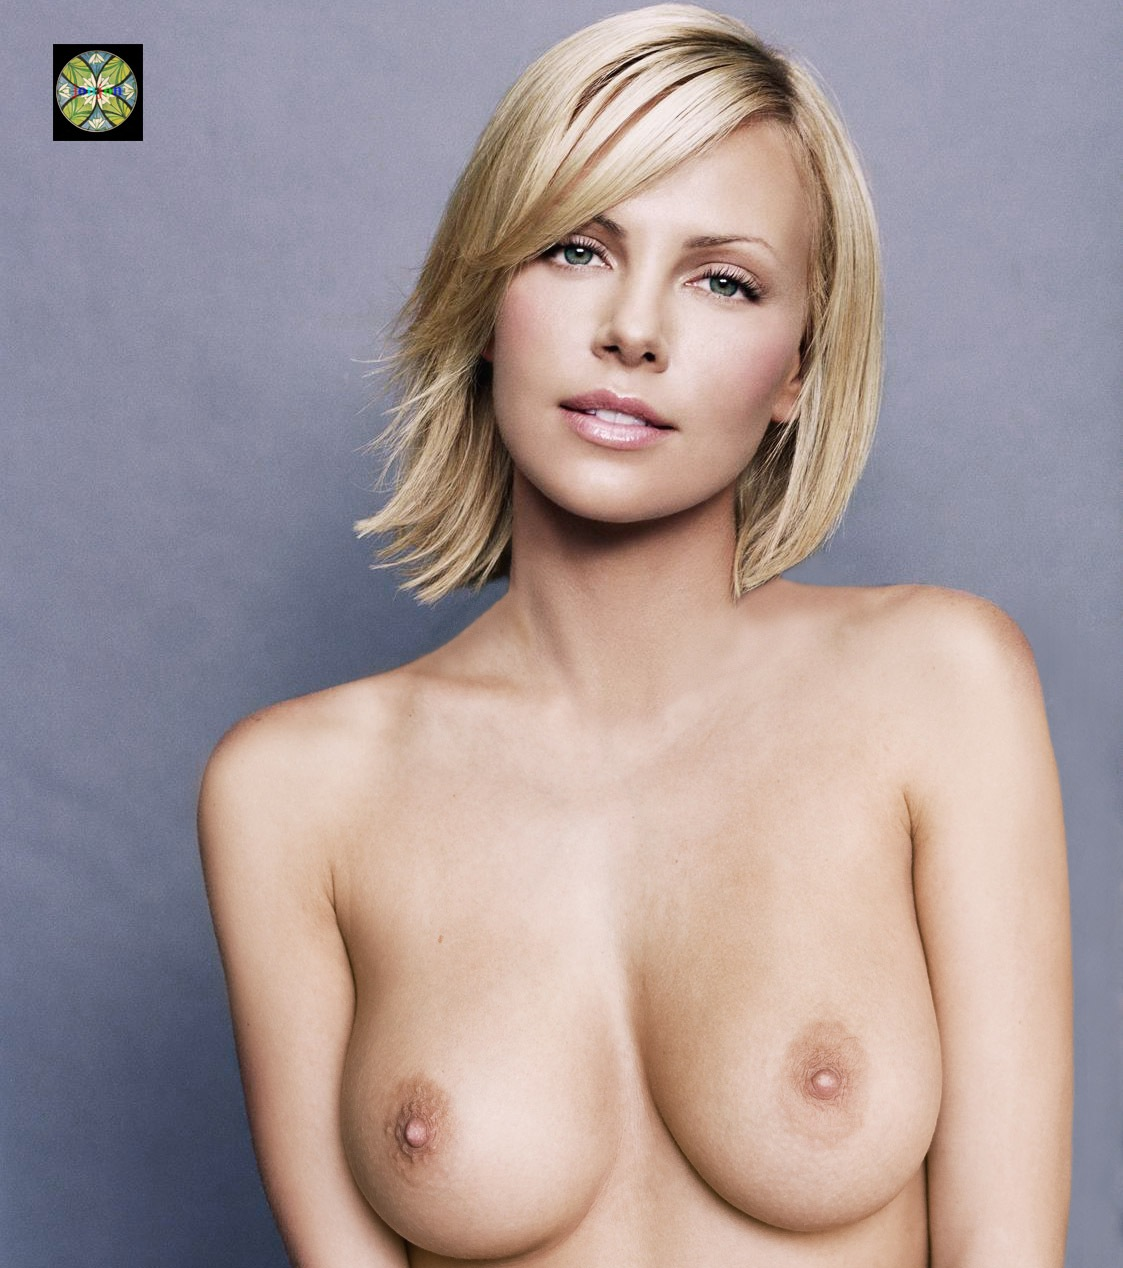 Celebrity porn images and free celebrities porn images photos